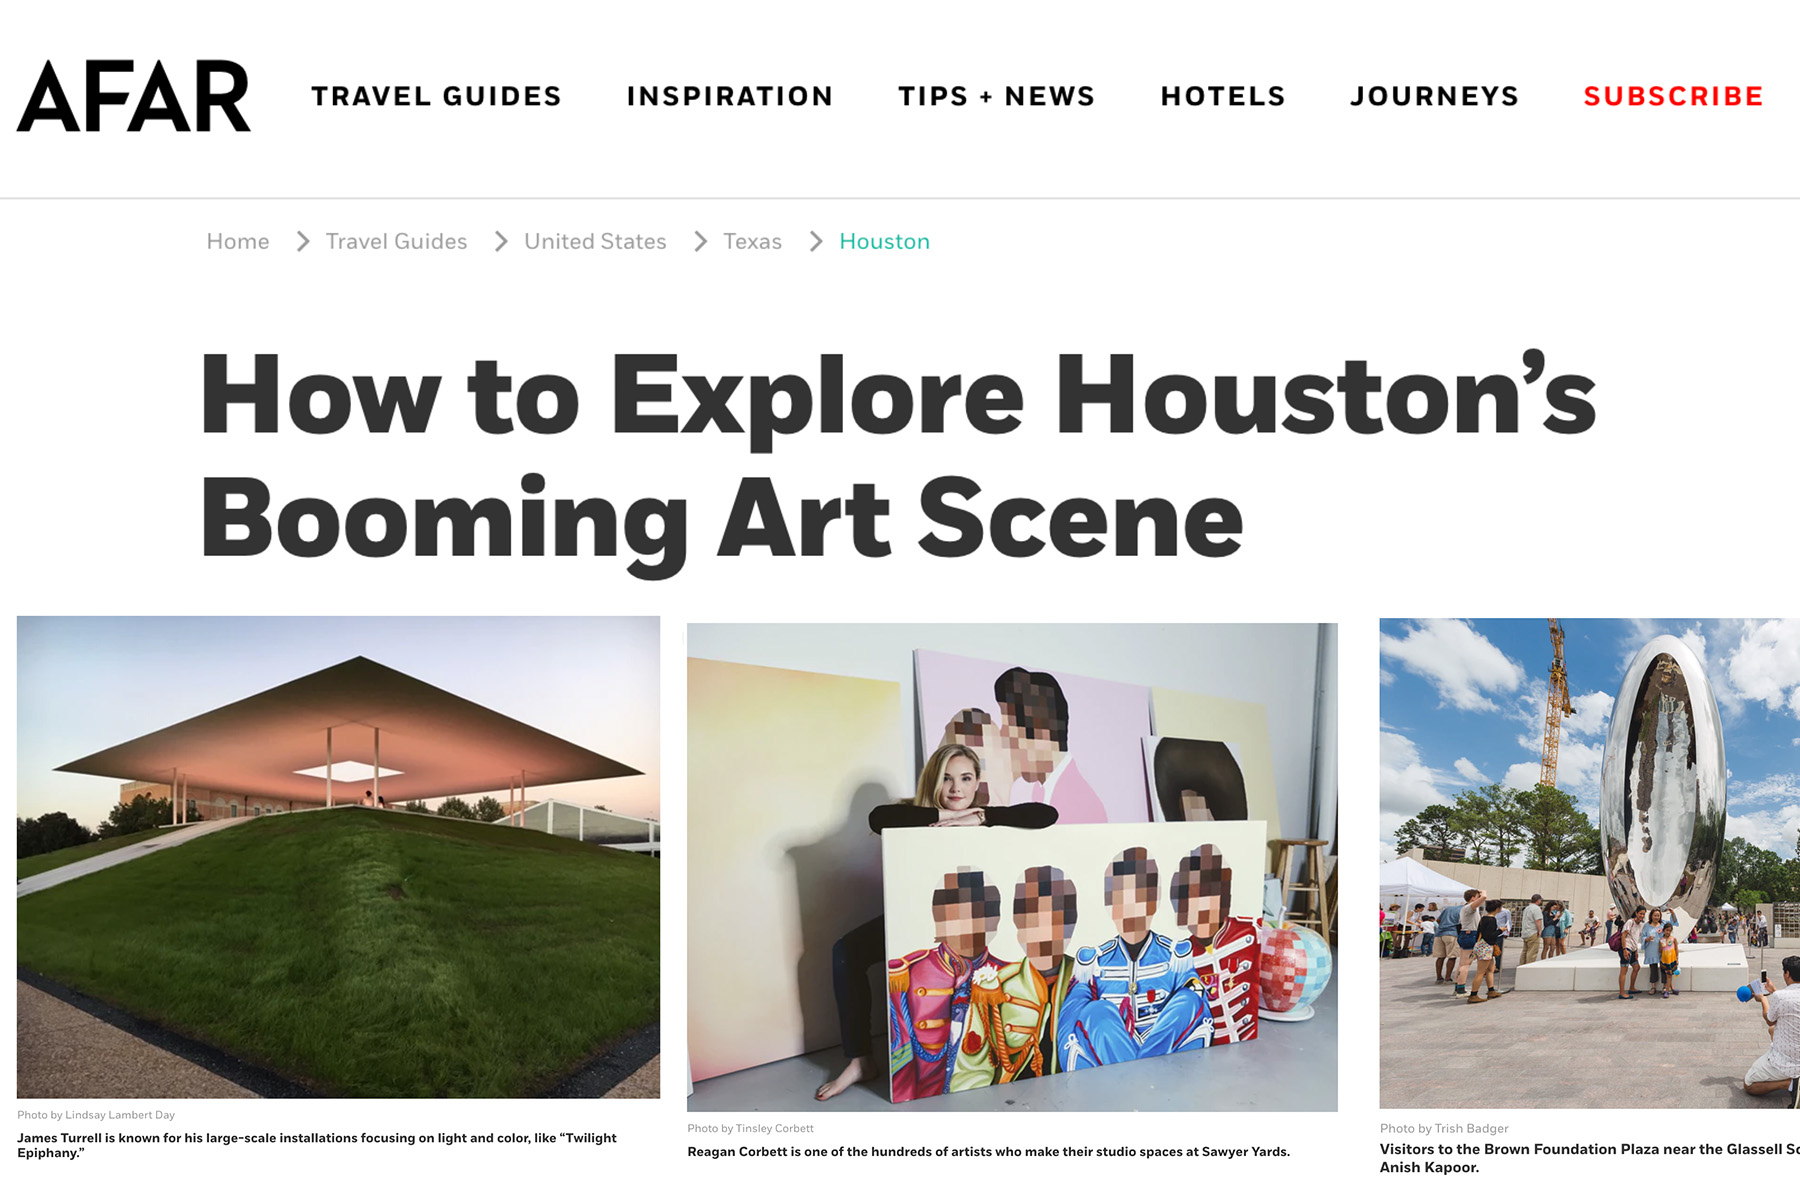 AFAR: How to Explore Houston's Booming Art Scene - When you think about great art cities in the United States, New York, Los Angeles, San Francisco, and Miami probably come to mind. But Houston is home to a robust arts scene of its own, with everything from colorful graffiti parks to modern museums. If that comes as a surprise, you're not alone.Lindsay Lambert Day | March 2019